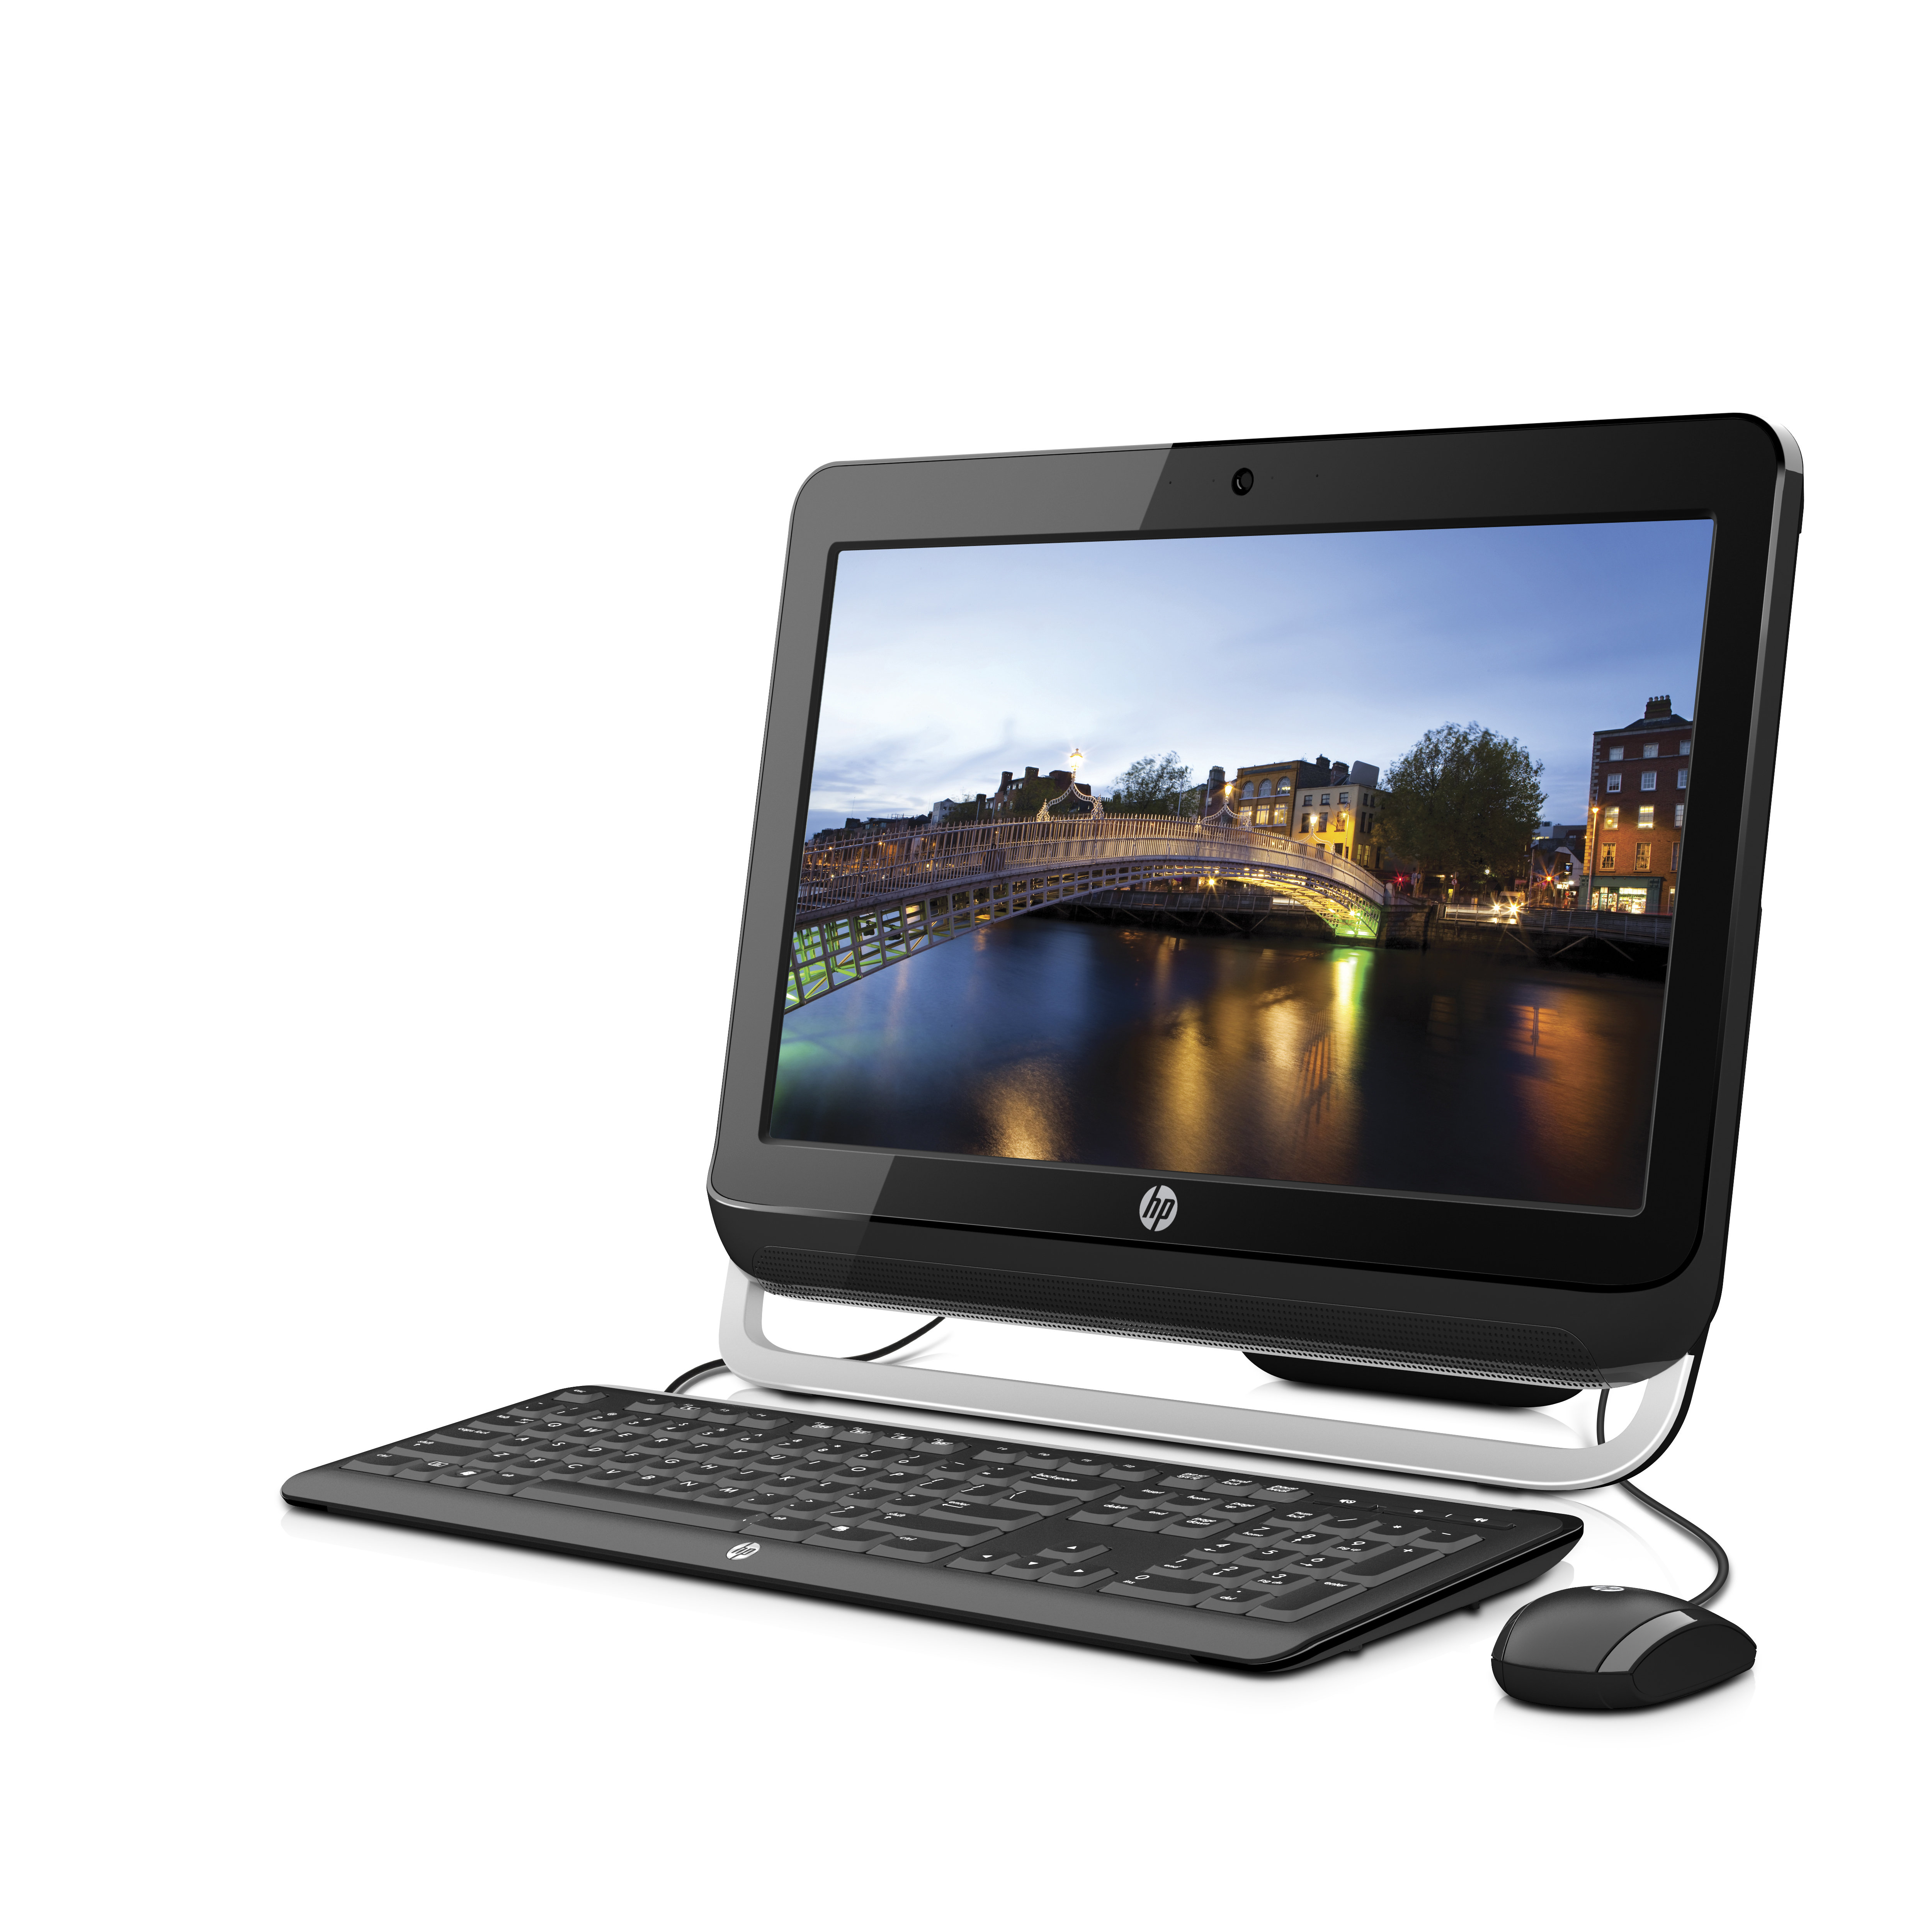 hp omni 120 1130ea desktop pc intel core i3 2120. Black Bedroom Furniture Sets. Home Design Ideas